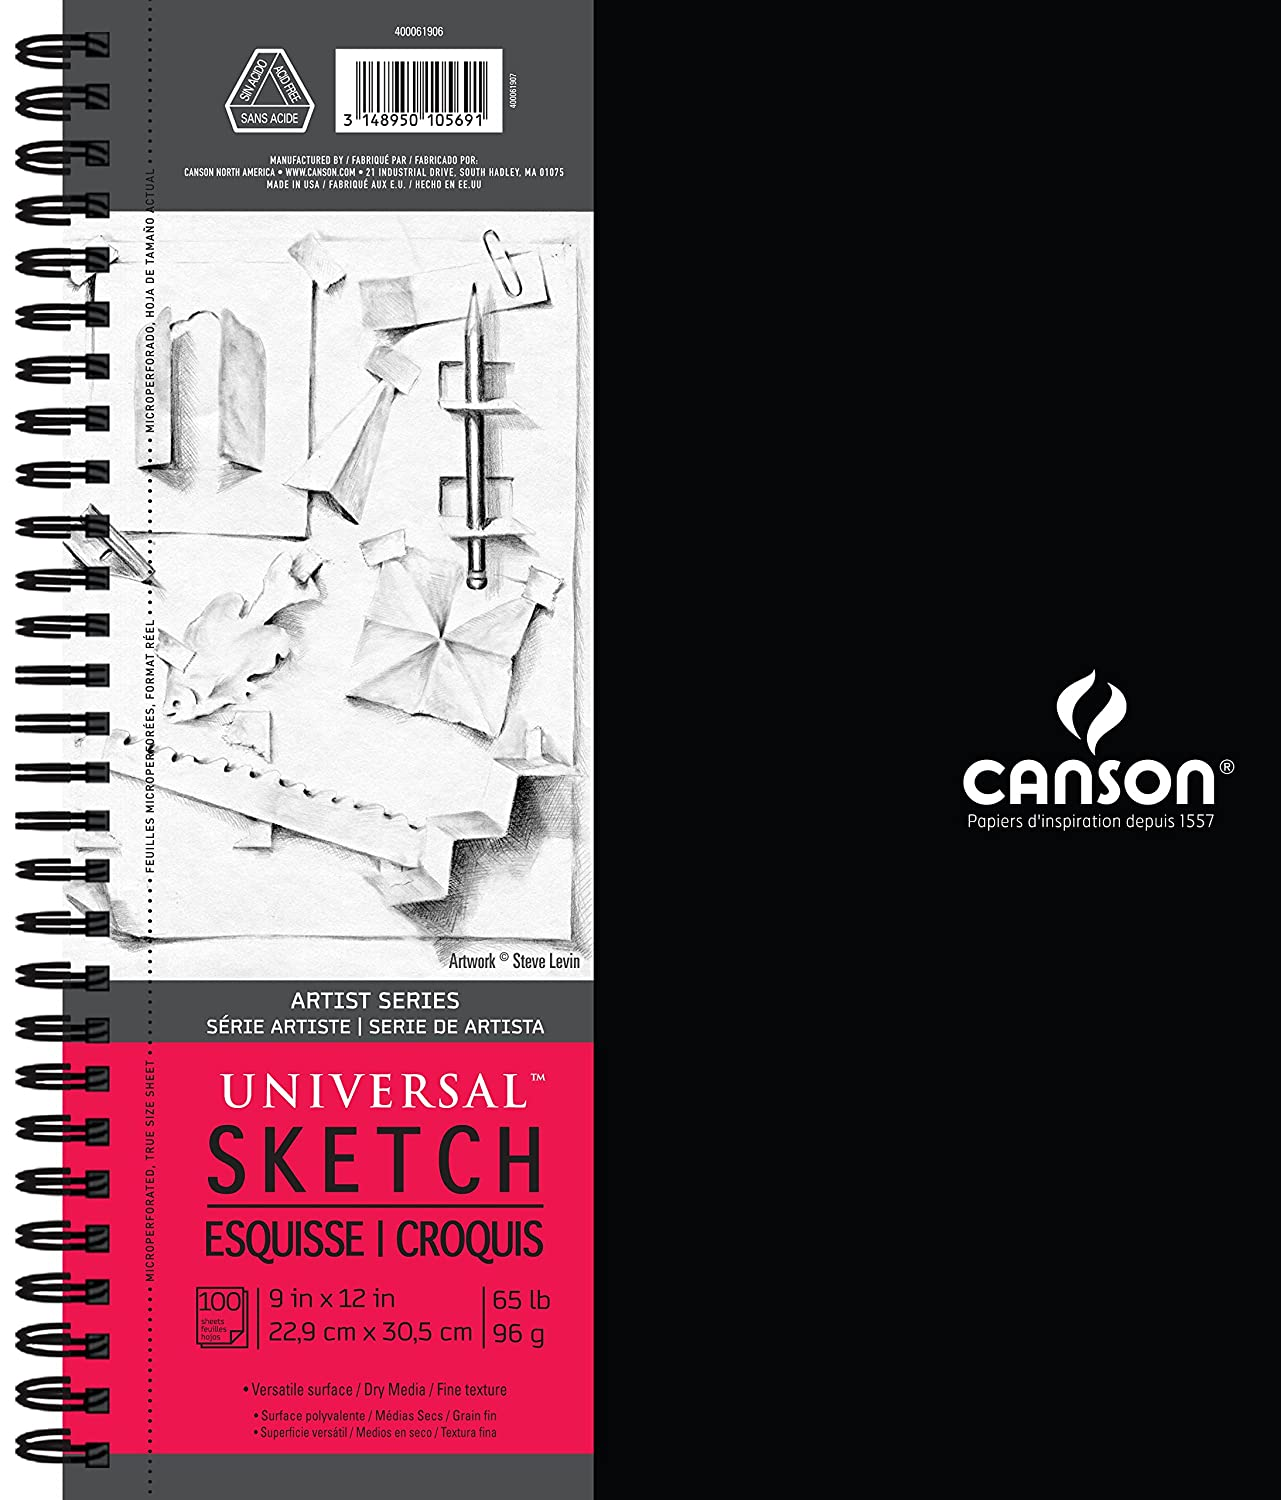 Canson Artist Series Universal Paper Sketch Pad, for Pencil and Charcoal, Micro-Perforated, Side Wire Bound, 65 Pound, 9 x 12 Inch, 100 Sheets Canson Inc 400061906